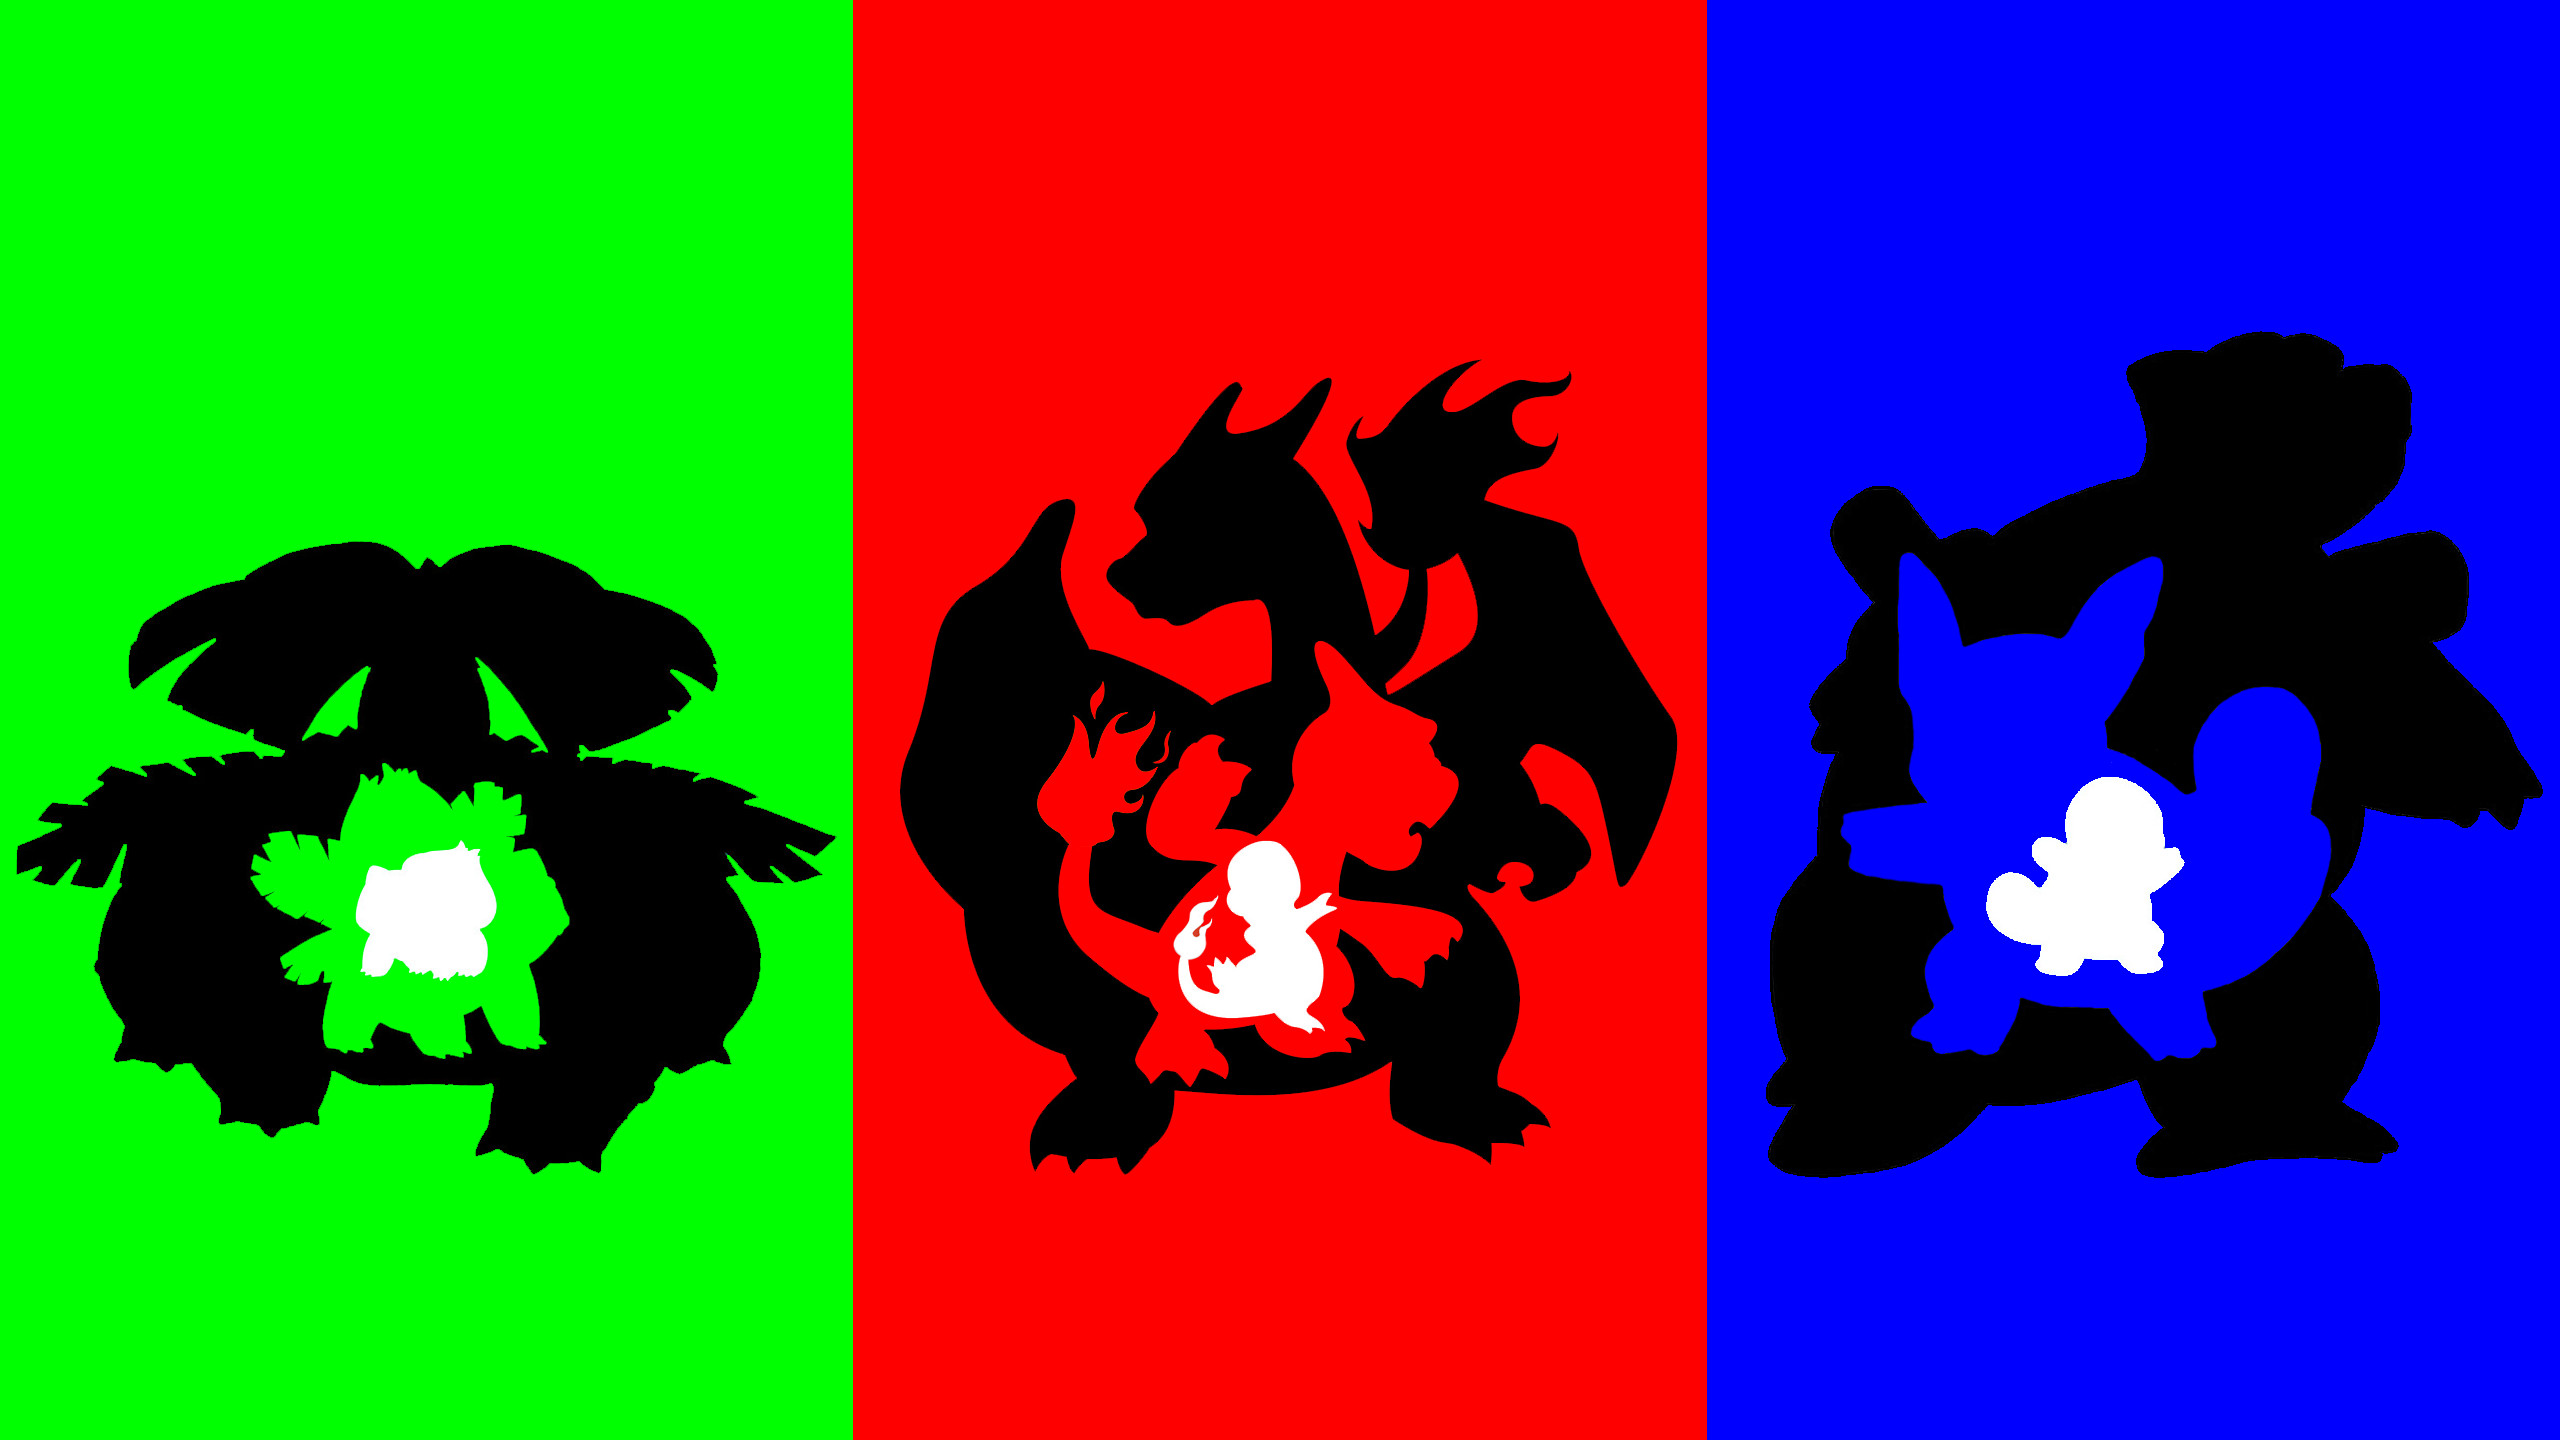 Pokemon wallpaper here in high quality | HD Wallpapers | Pinterest |  Wallpaper and Hd wallpaper